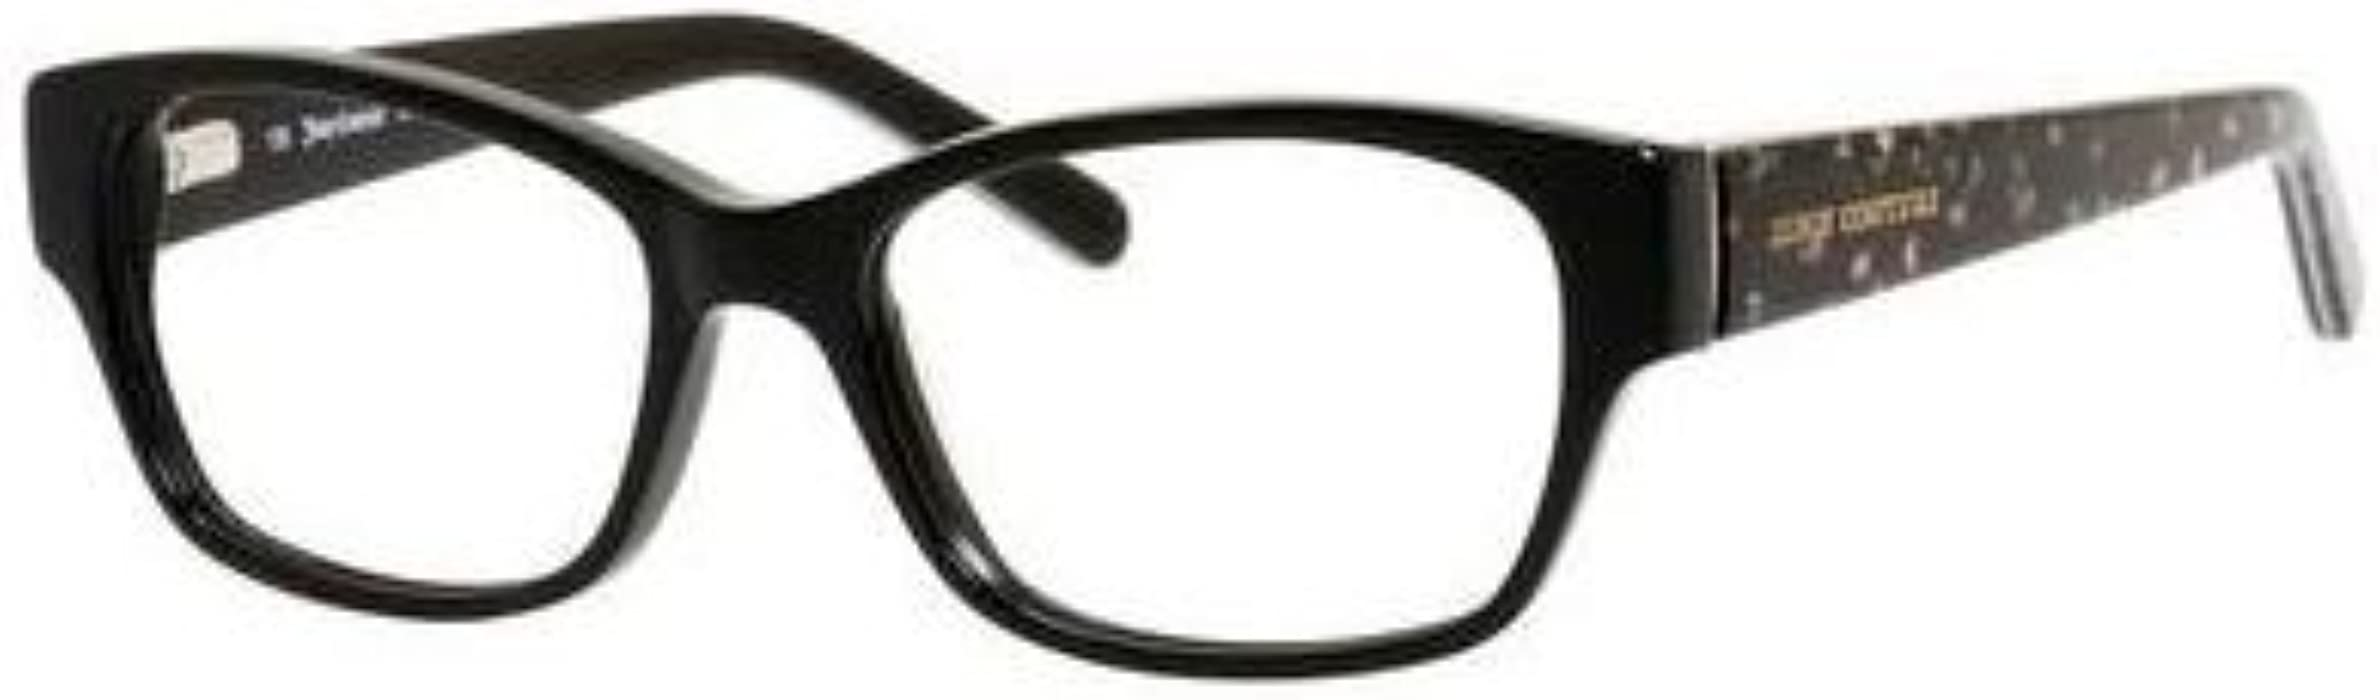 8c5766cb45f7 Juicy couture eyeglasses black floral jpg 2298x700 Juicy couture glasses  frames for women